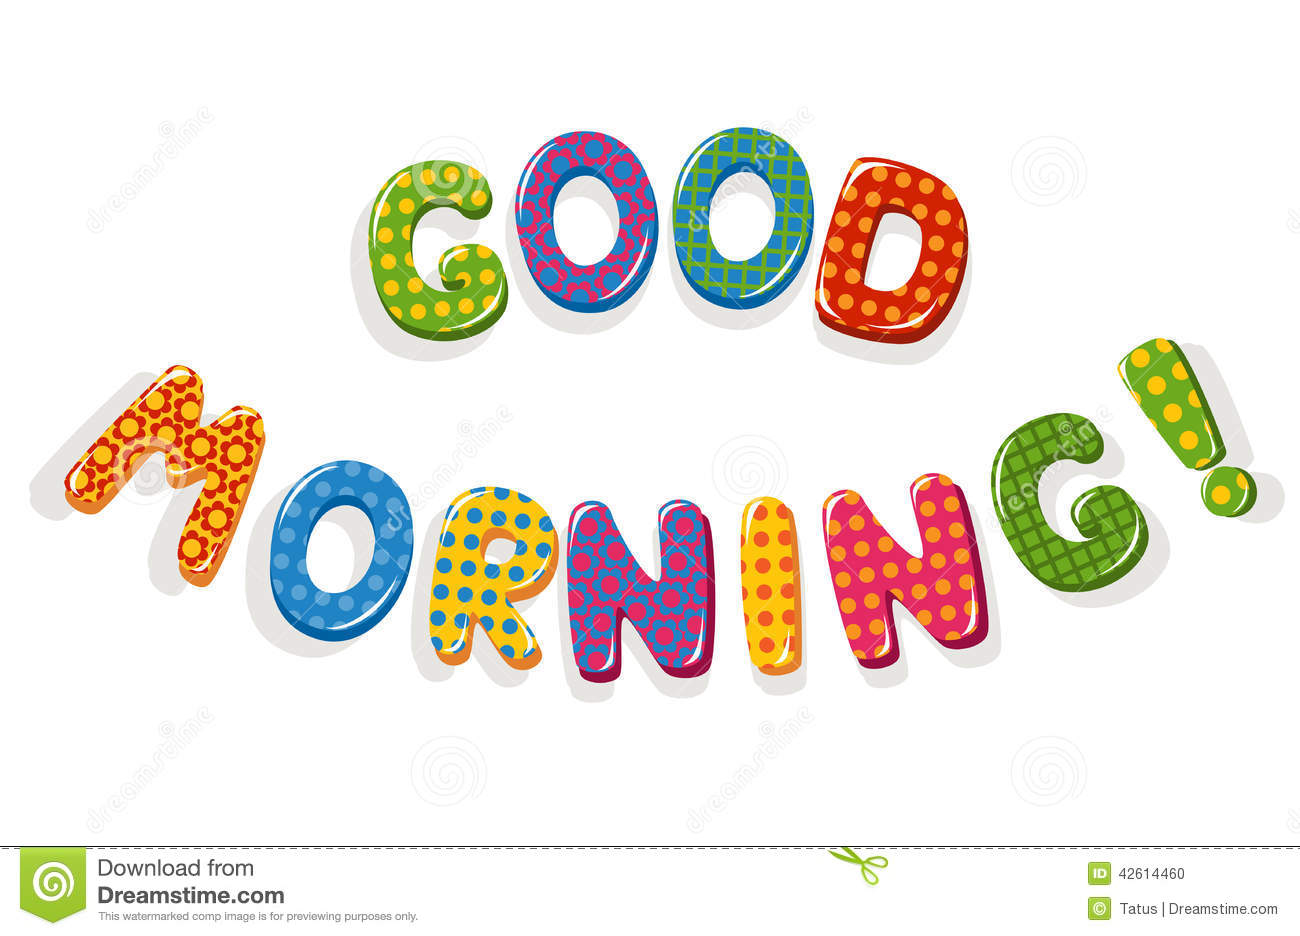 Good Morning Clipart .-Good Morning Clipart .-8